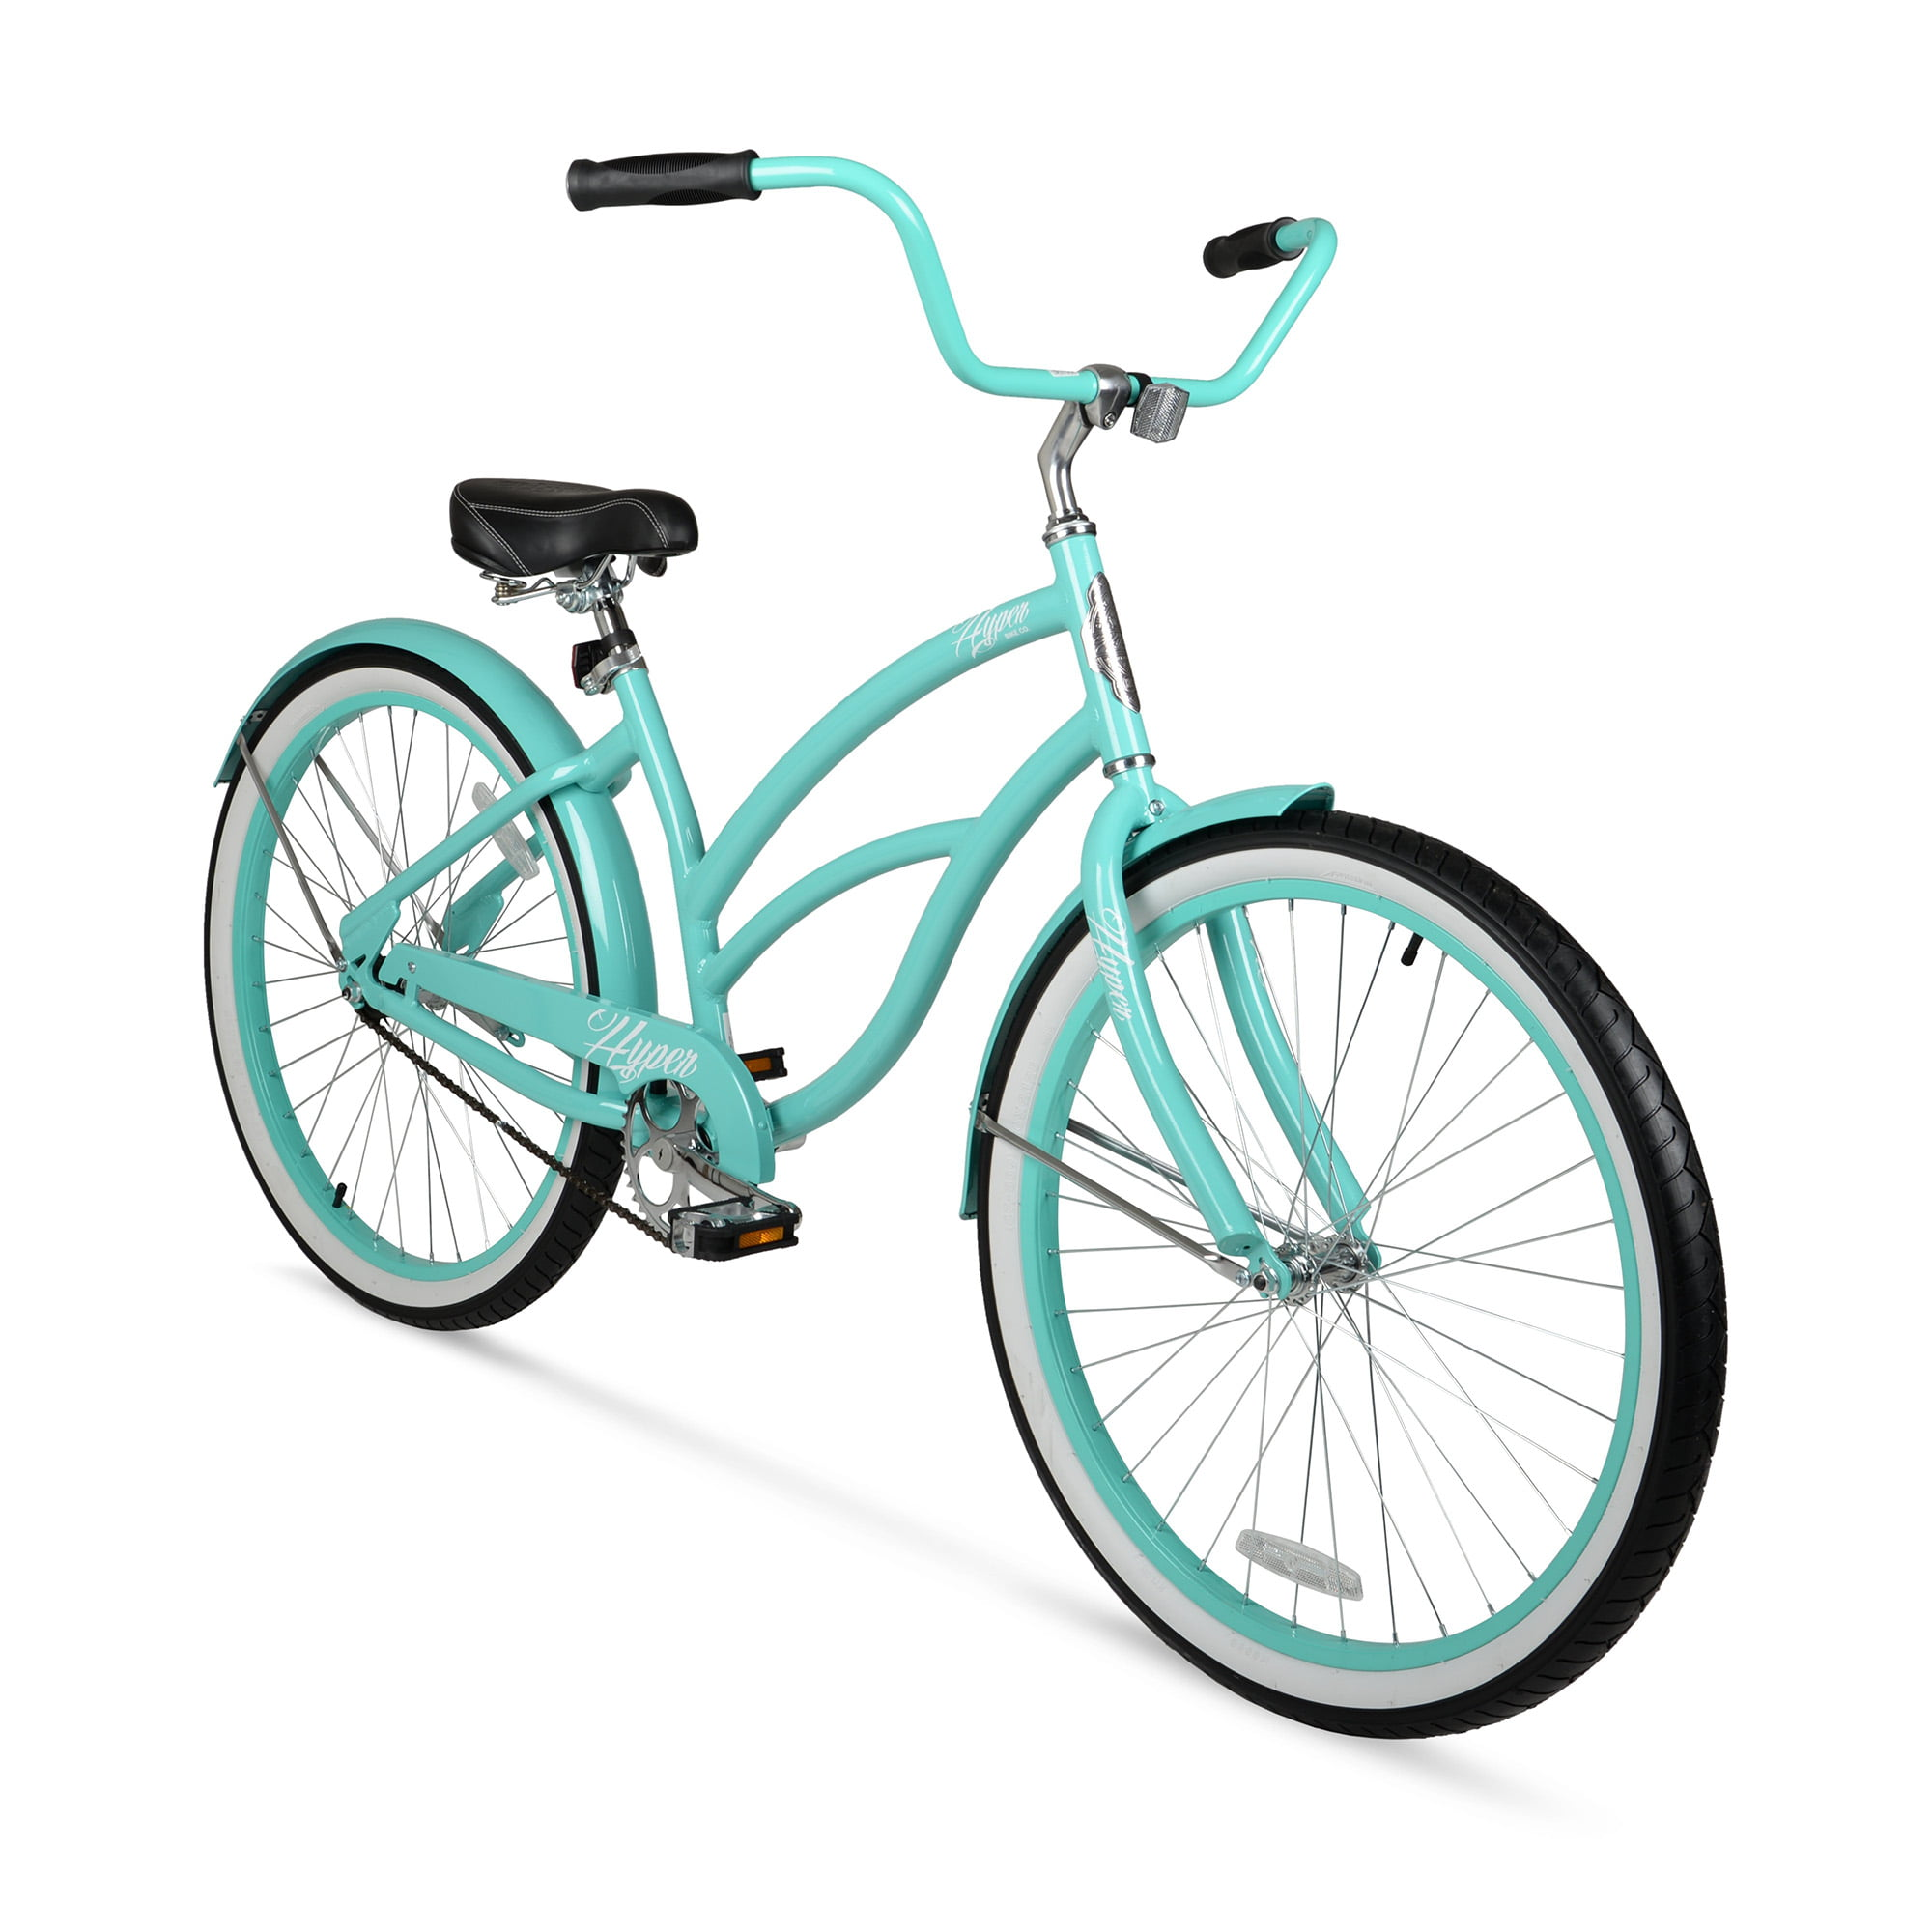 "Beach Cruiser Bike Turquois 26"" Lightweight Aluminum Frame Women ..."